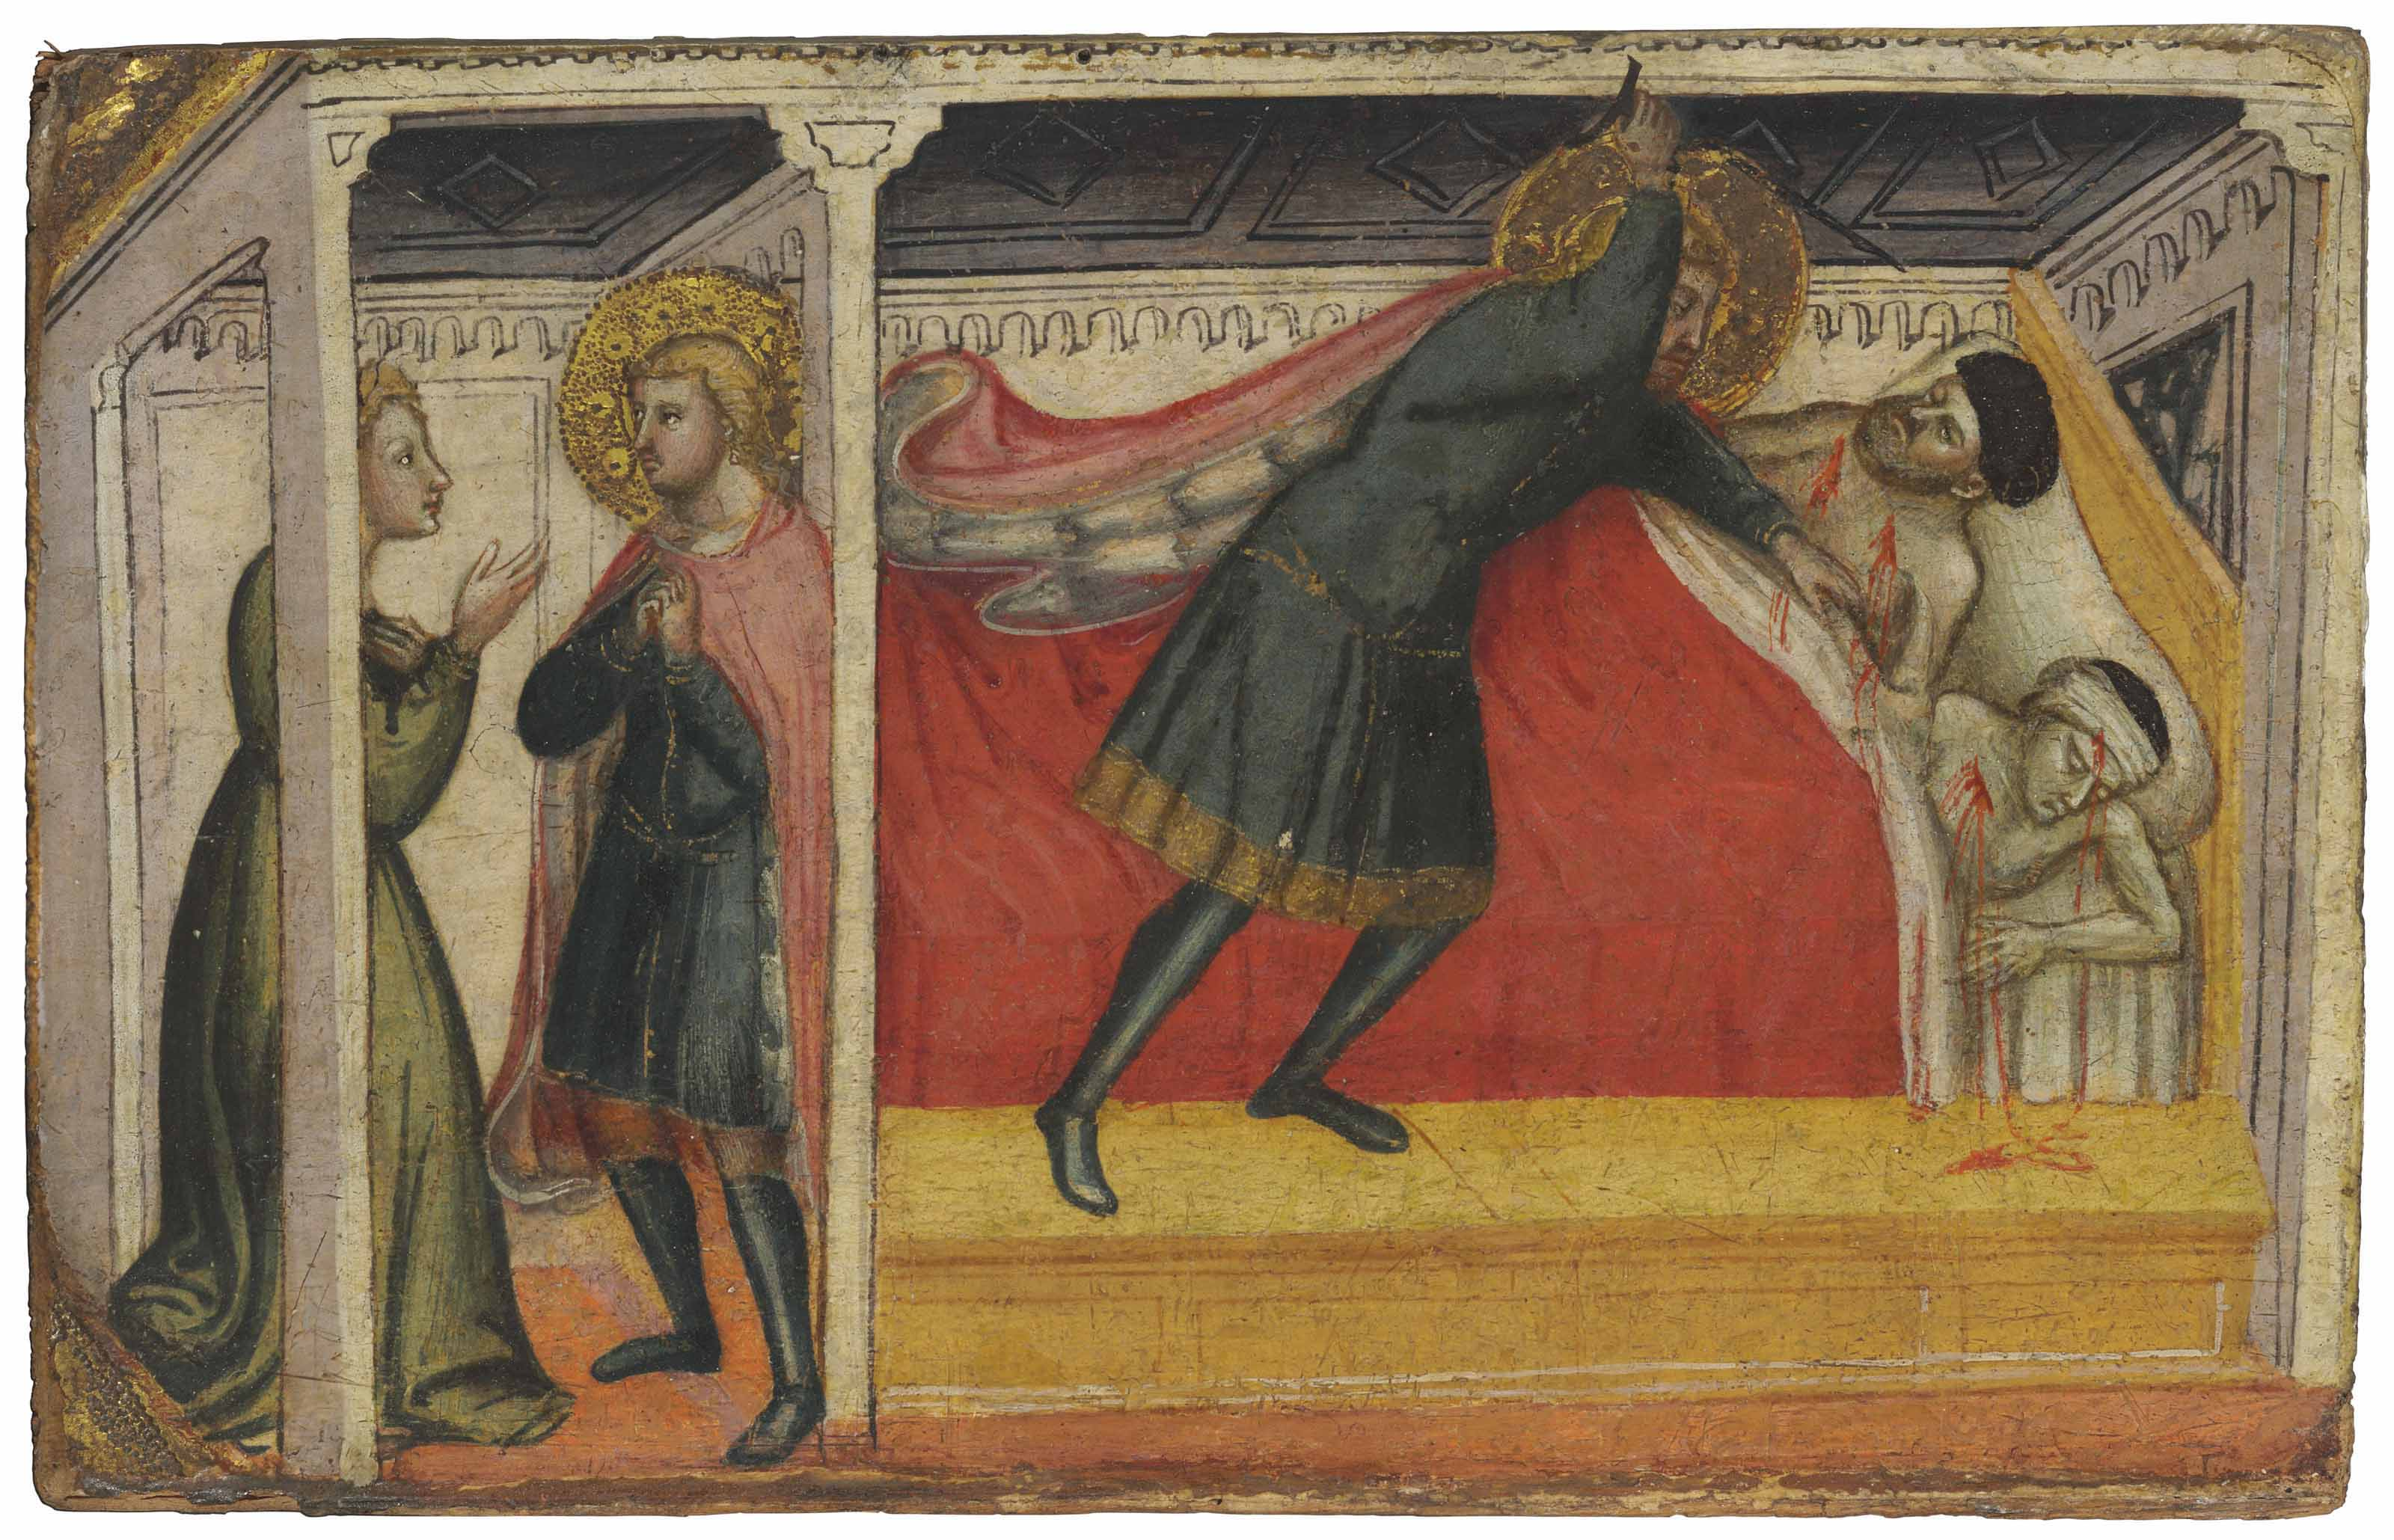 Saint Julian the Hospitaller kills his father and mother and confesses to his wife